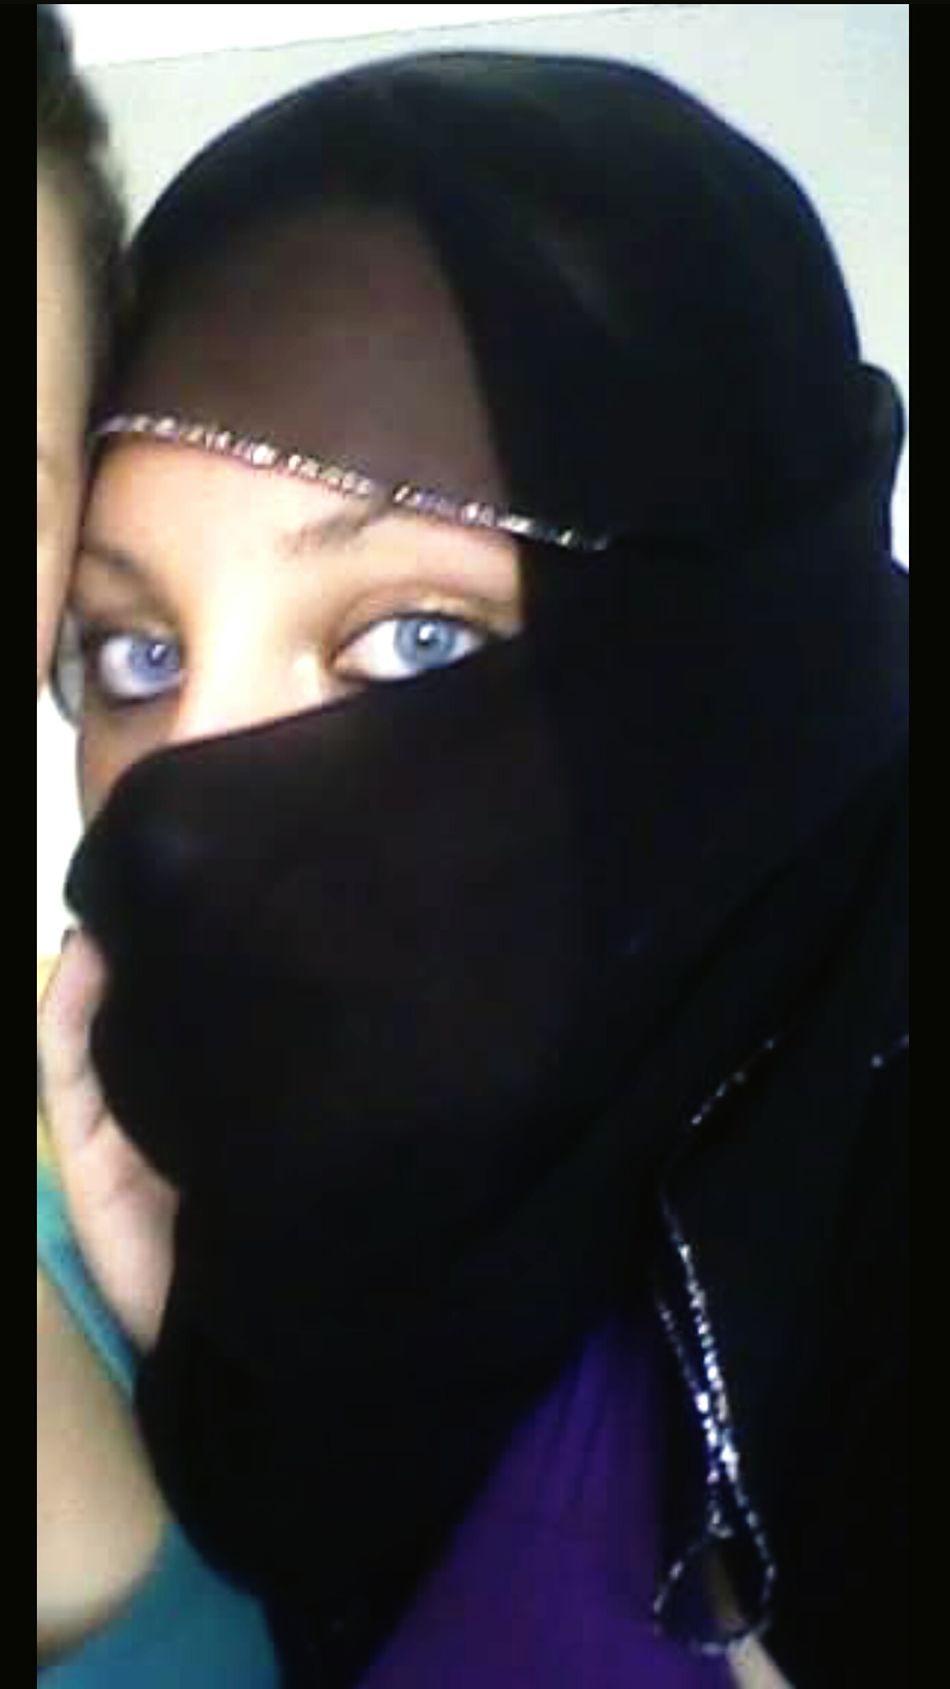 Human Face Human Eye Doyoulikeit? Eyes Are Soul Reflection Hello World ✌ Hijabstyle  Hijabgirl MySoulIsSmiling❤️ Looking At Camera Notmyfirsteyemphoto ImagineAllThePeopleLivingLifeInPeace Allyouneedislove Love Is In The Air BlueEyes Alive And Well EyesOnTheBronx Simplyme One Young Woman Only LoveForAllWhoAreServing Bro Girls Loving Life! Sohappy😁😄 Arabic Tradition Just Being Me